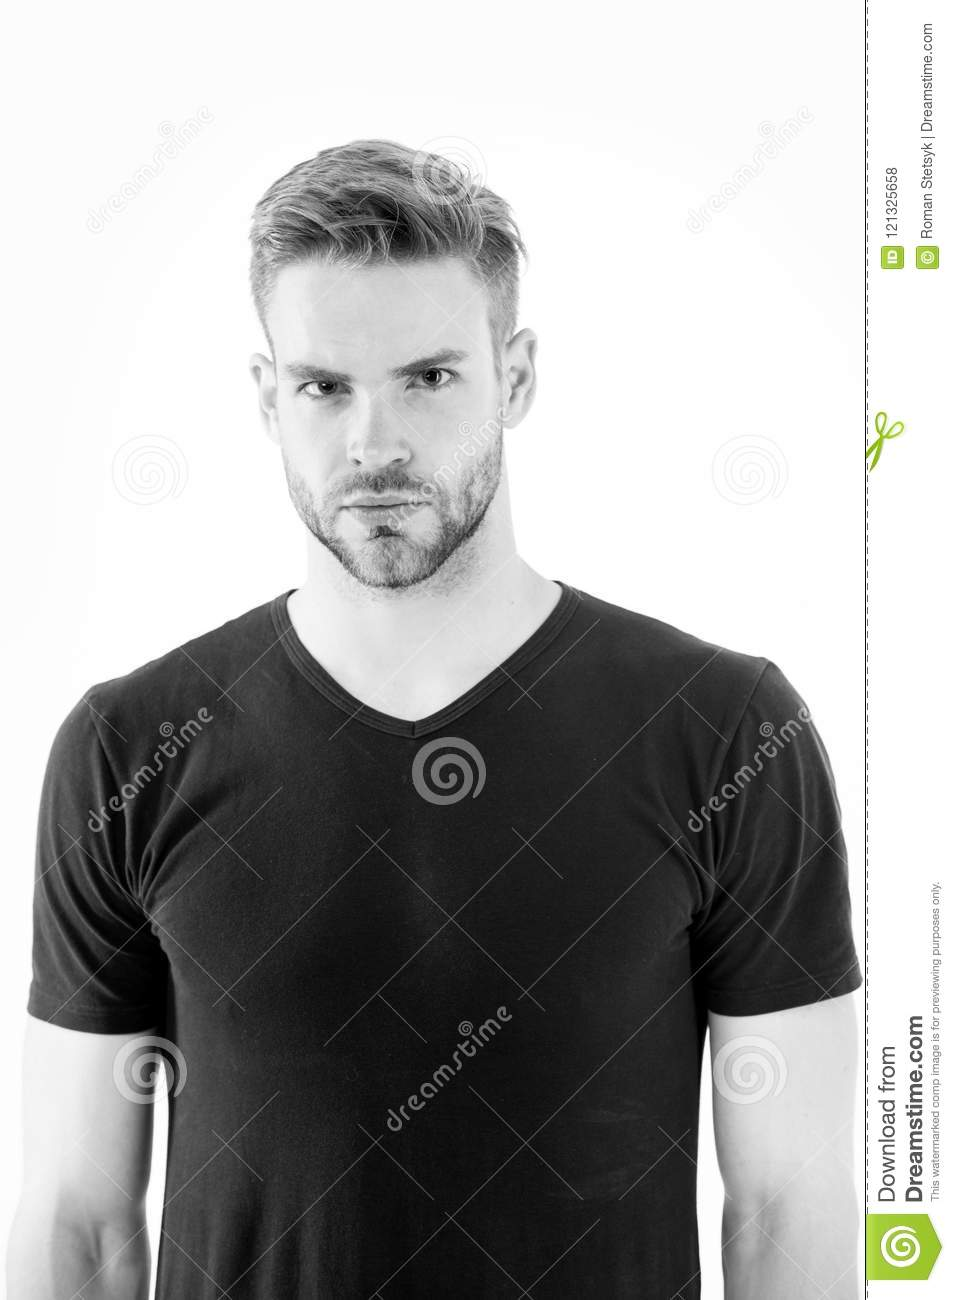 Man In Casual Tshirt Isolated On White Guy With Beard On Unshaven Face Bearded Man With Blond Hair Hair Care In Stock Photo Image Of Handsome Attraction 121325658